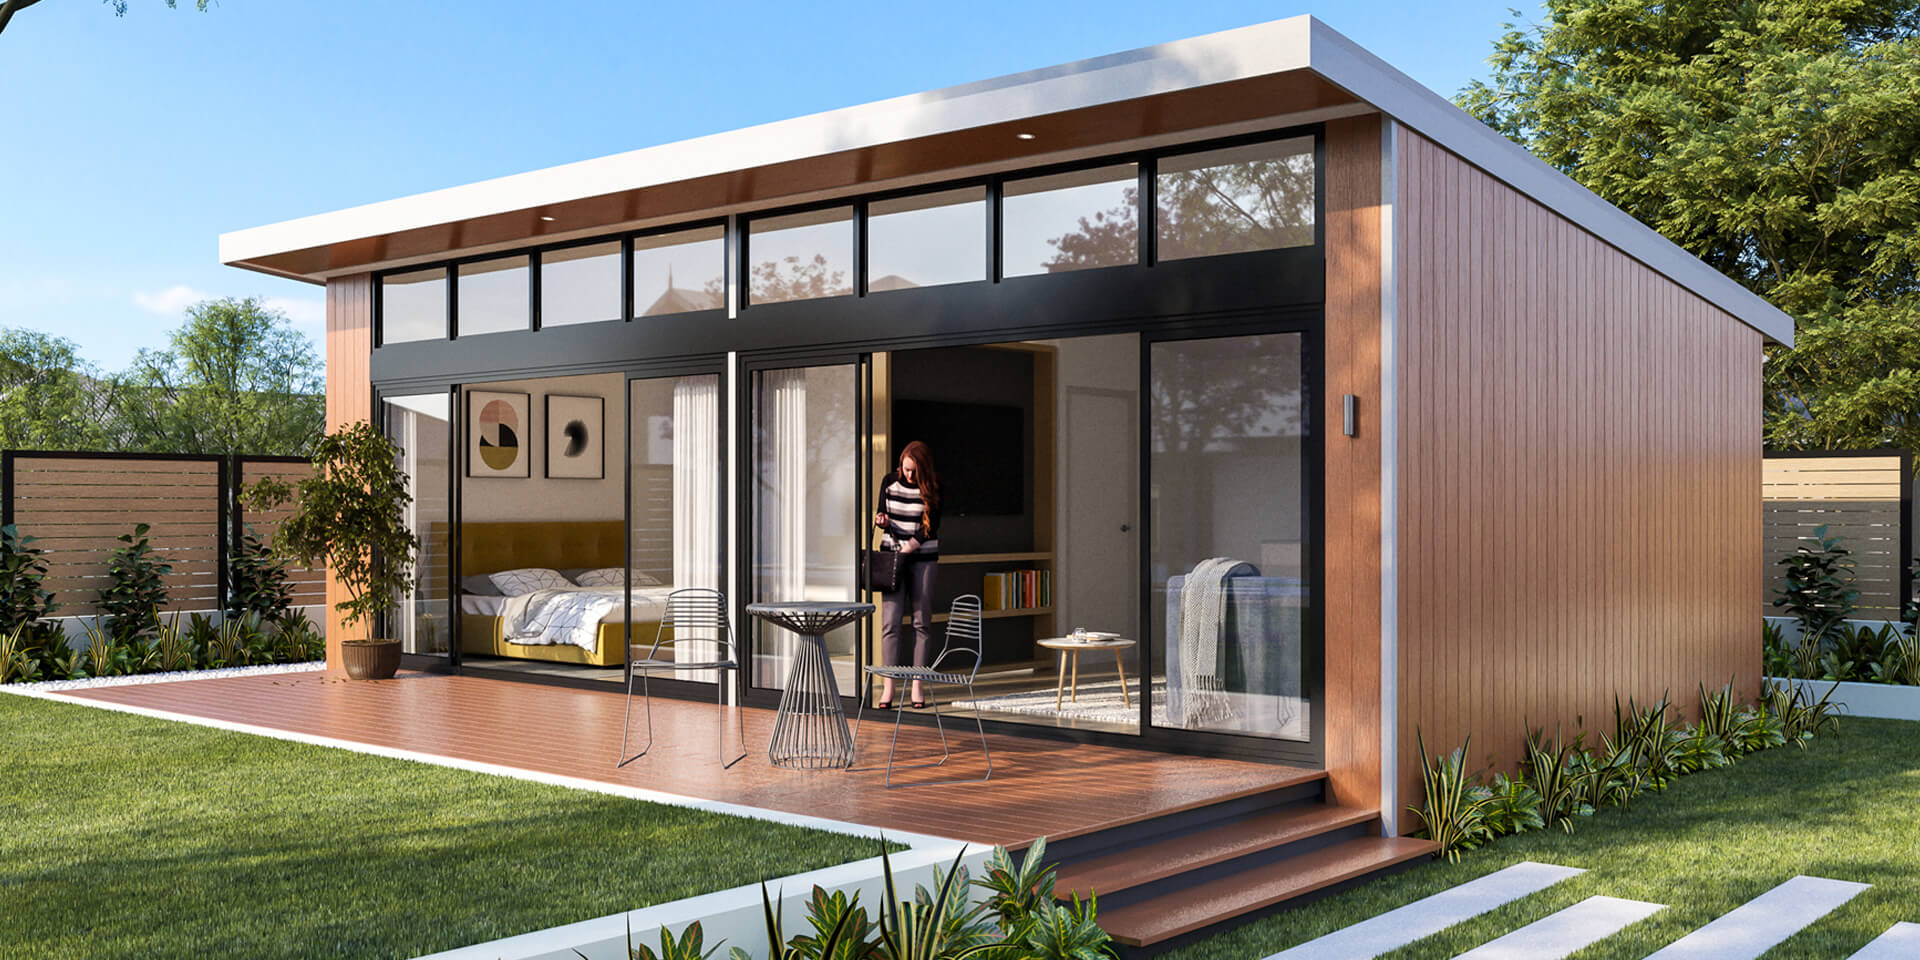 The Azure hybrid home by mygen homes